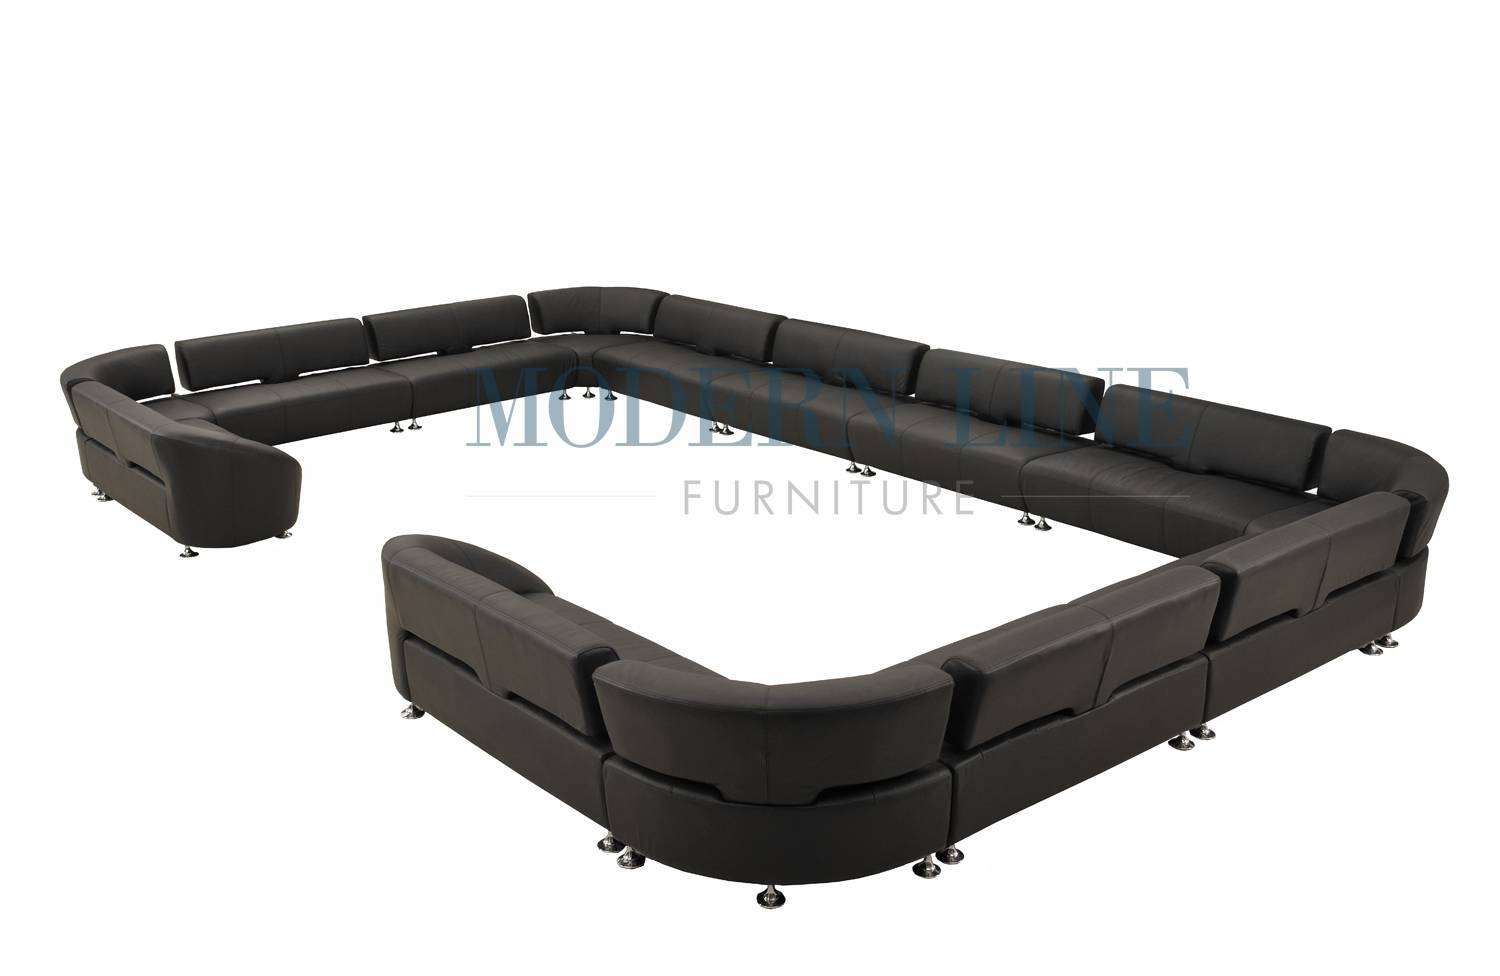 Modern Line Furniture - Commercial Furniture - Custom Made for C Shaped Sectional Sofa (Image 20 of 30)